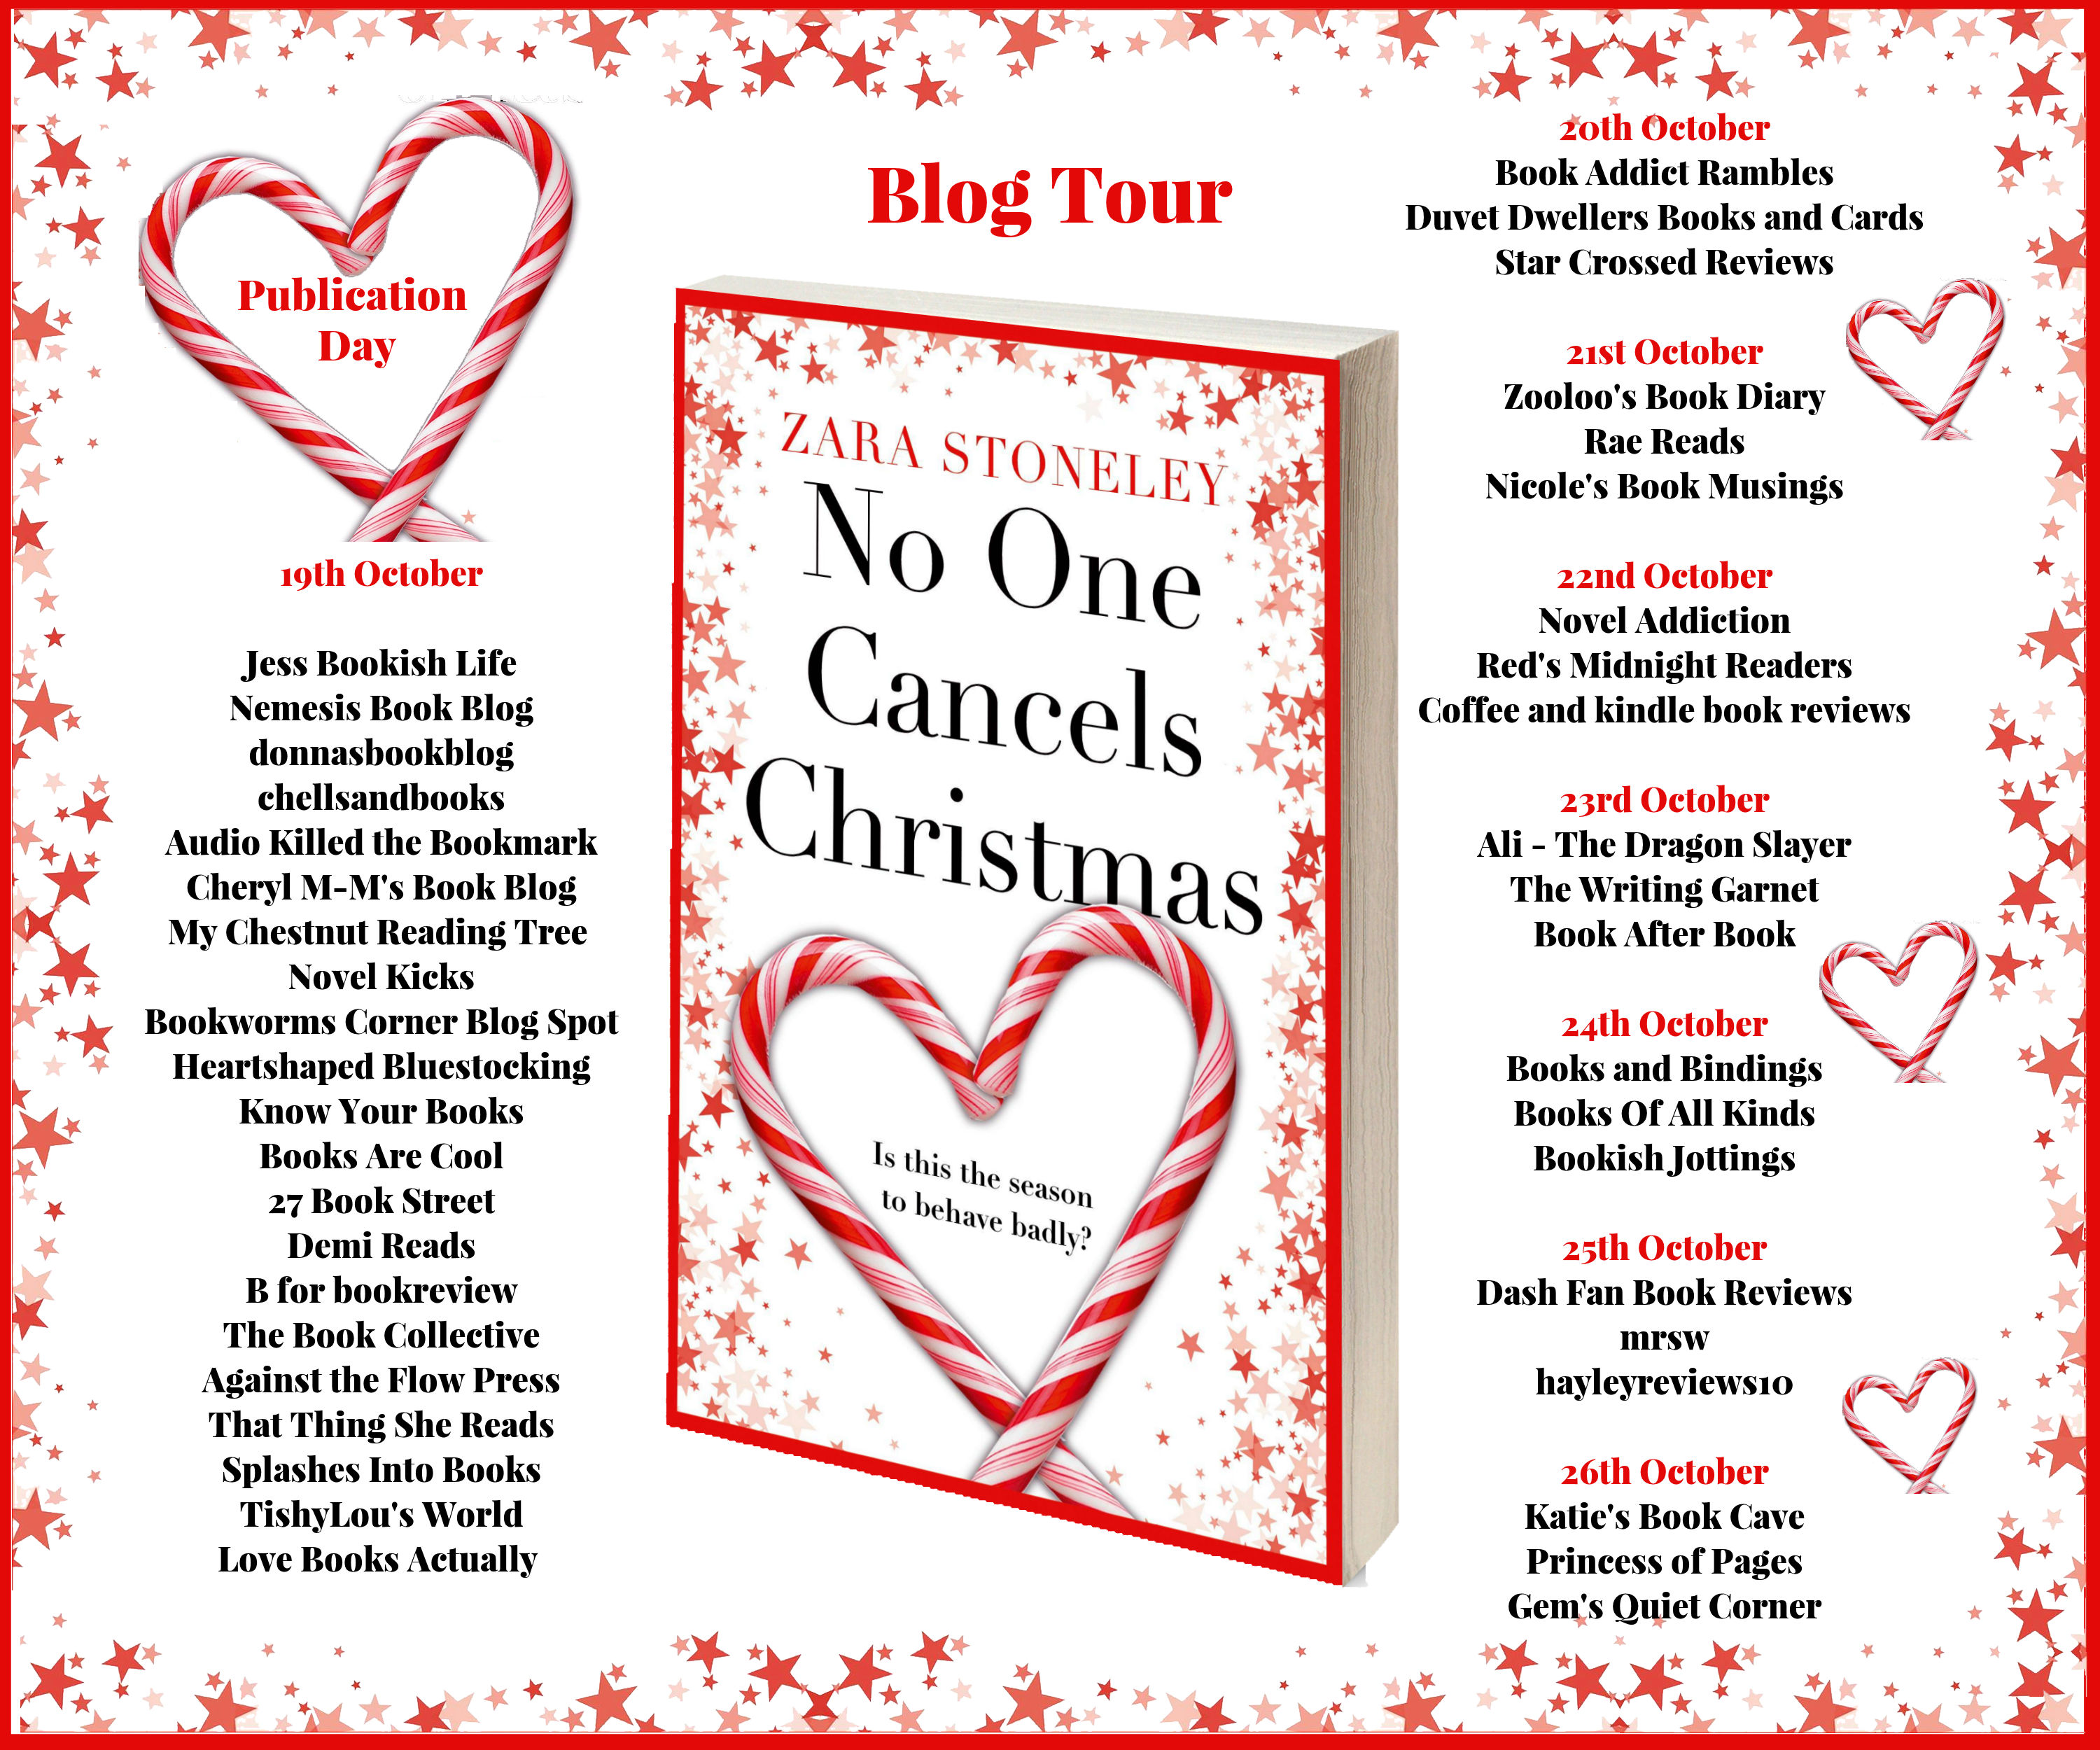 No One Cancels Christmas Full Tour Banner